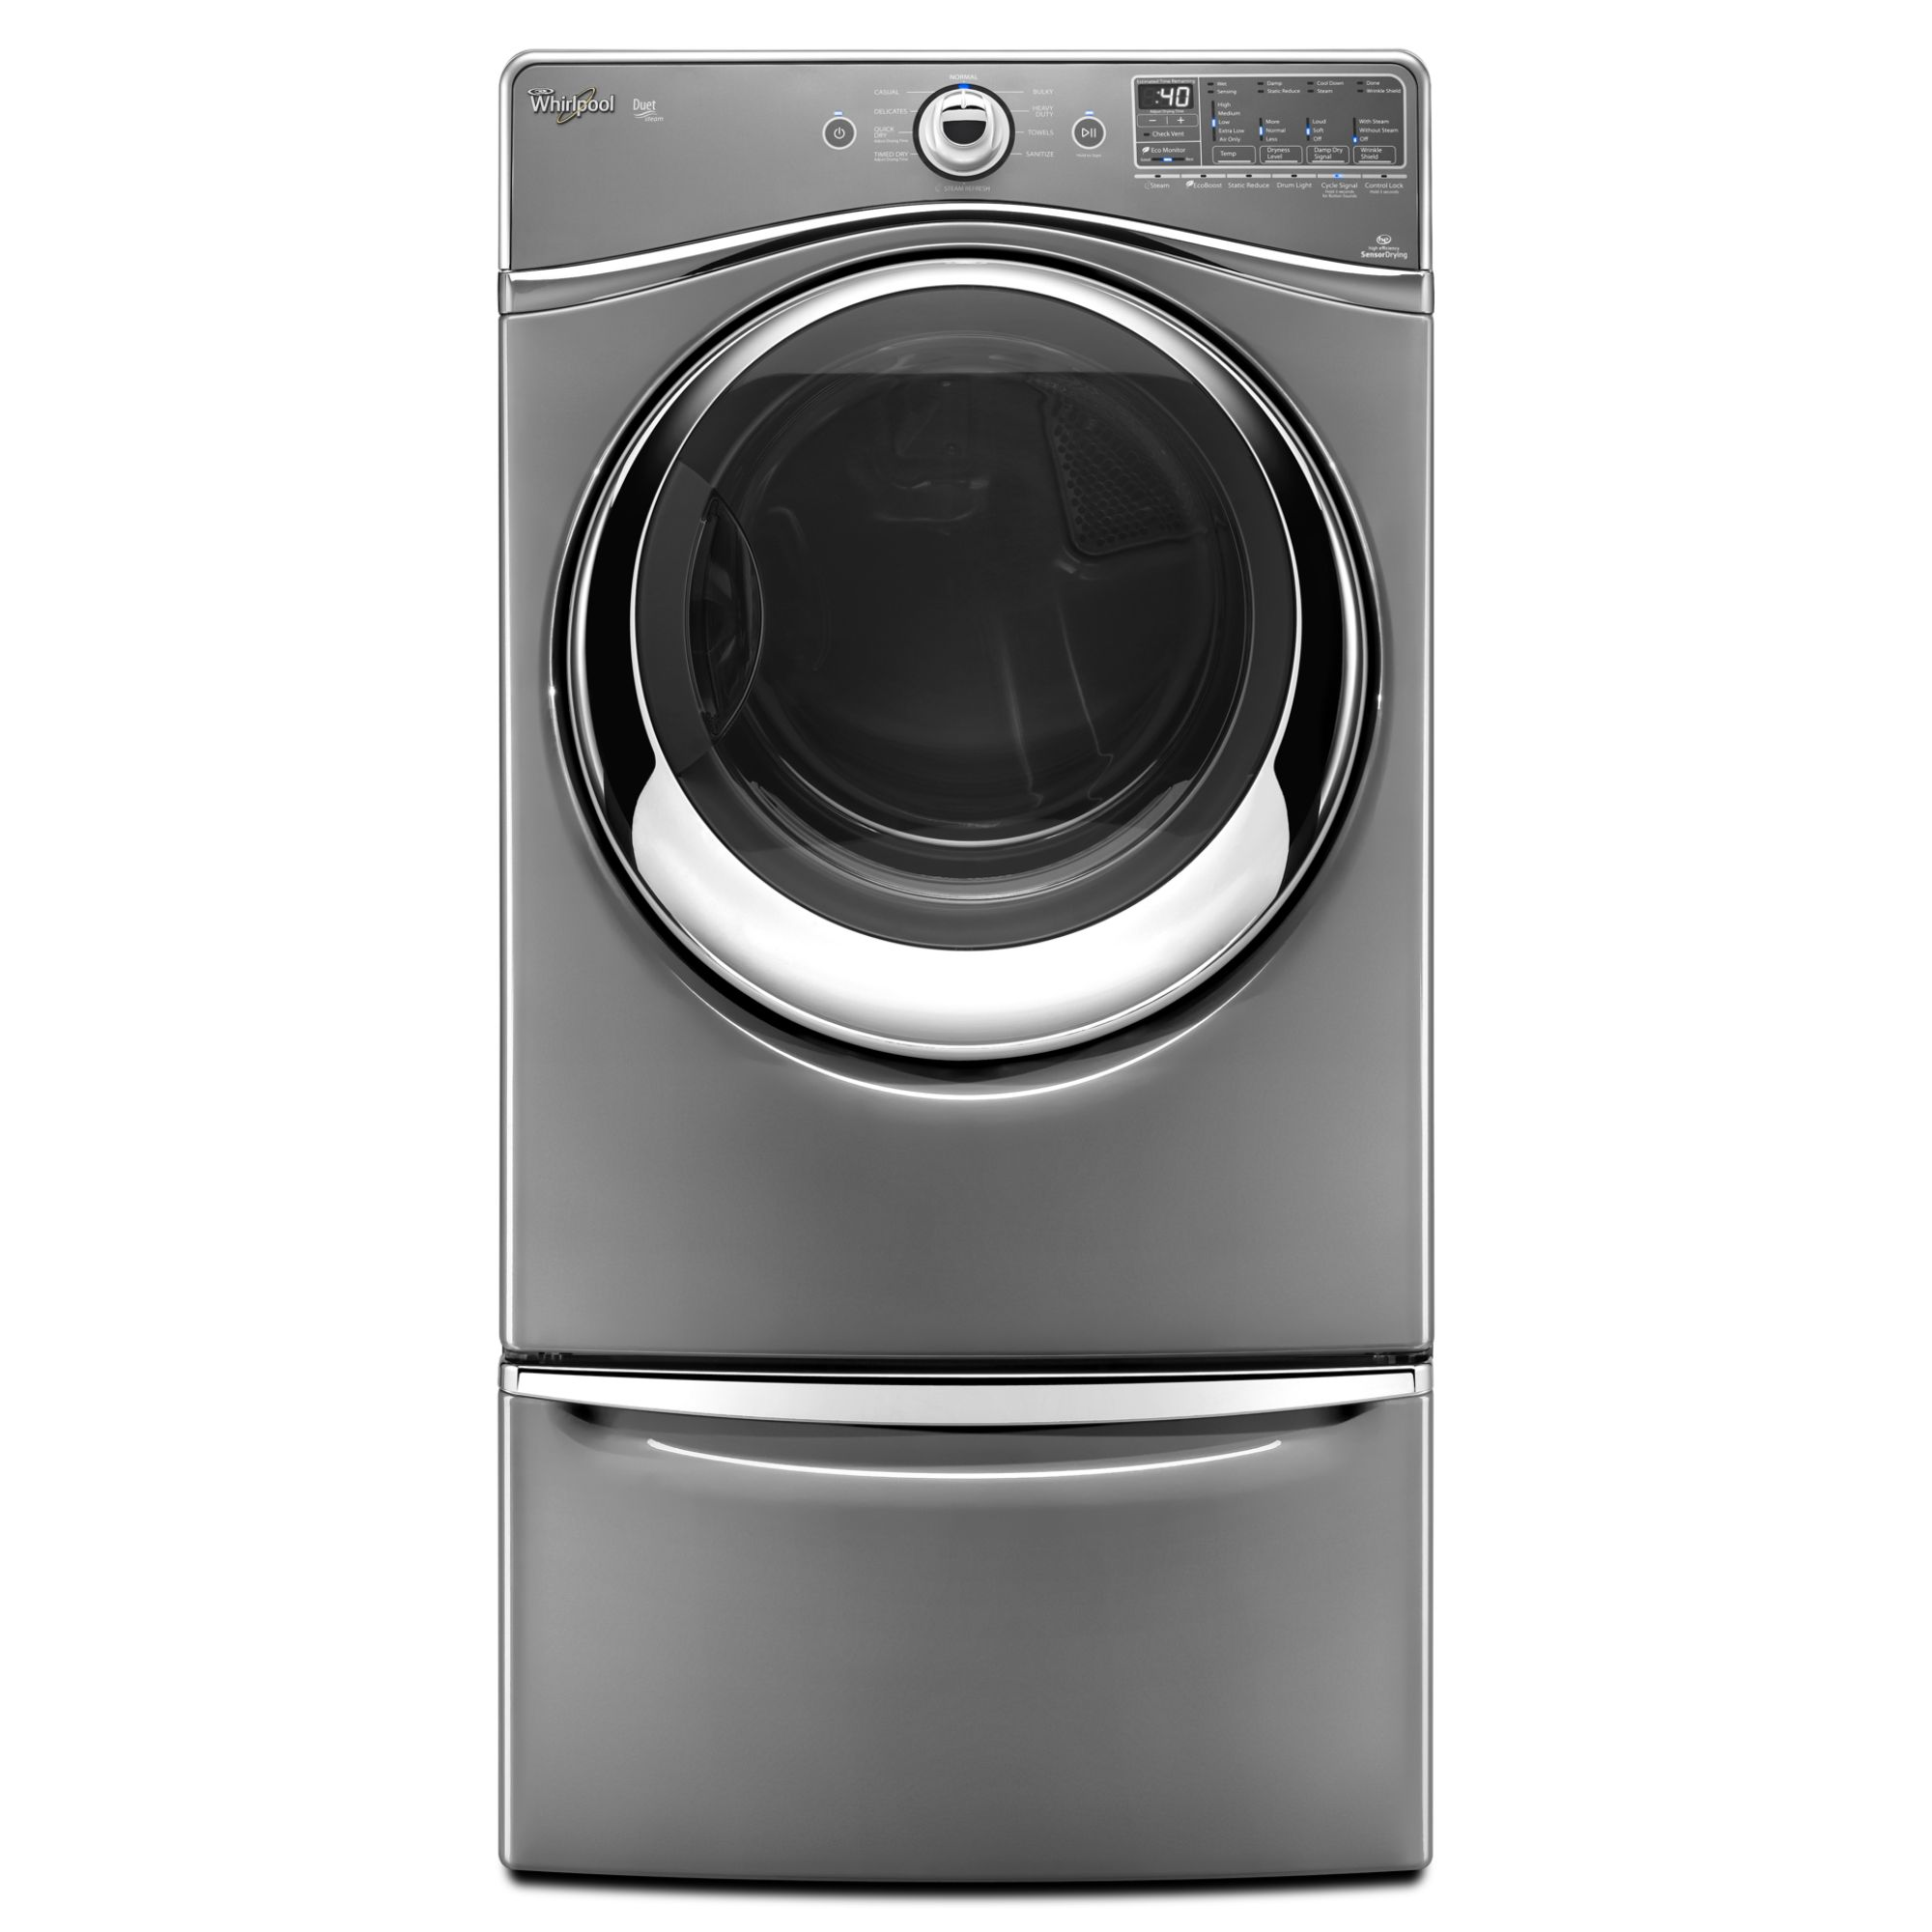 Whirlpool Duet® 7.4 cu. ft. Electric Dryer w/ Tap Touch Controls - Chrome Shadow